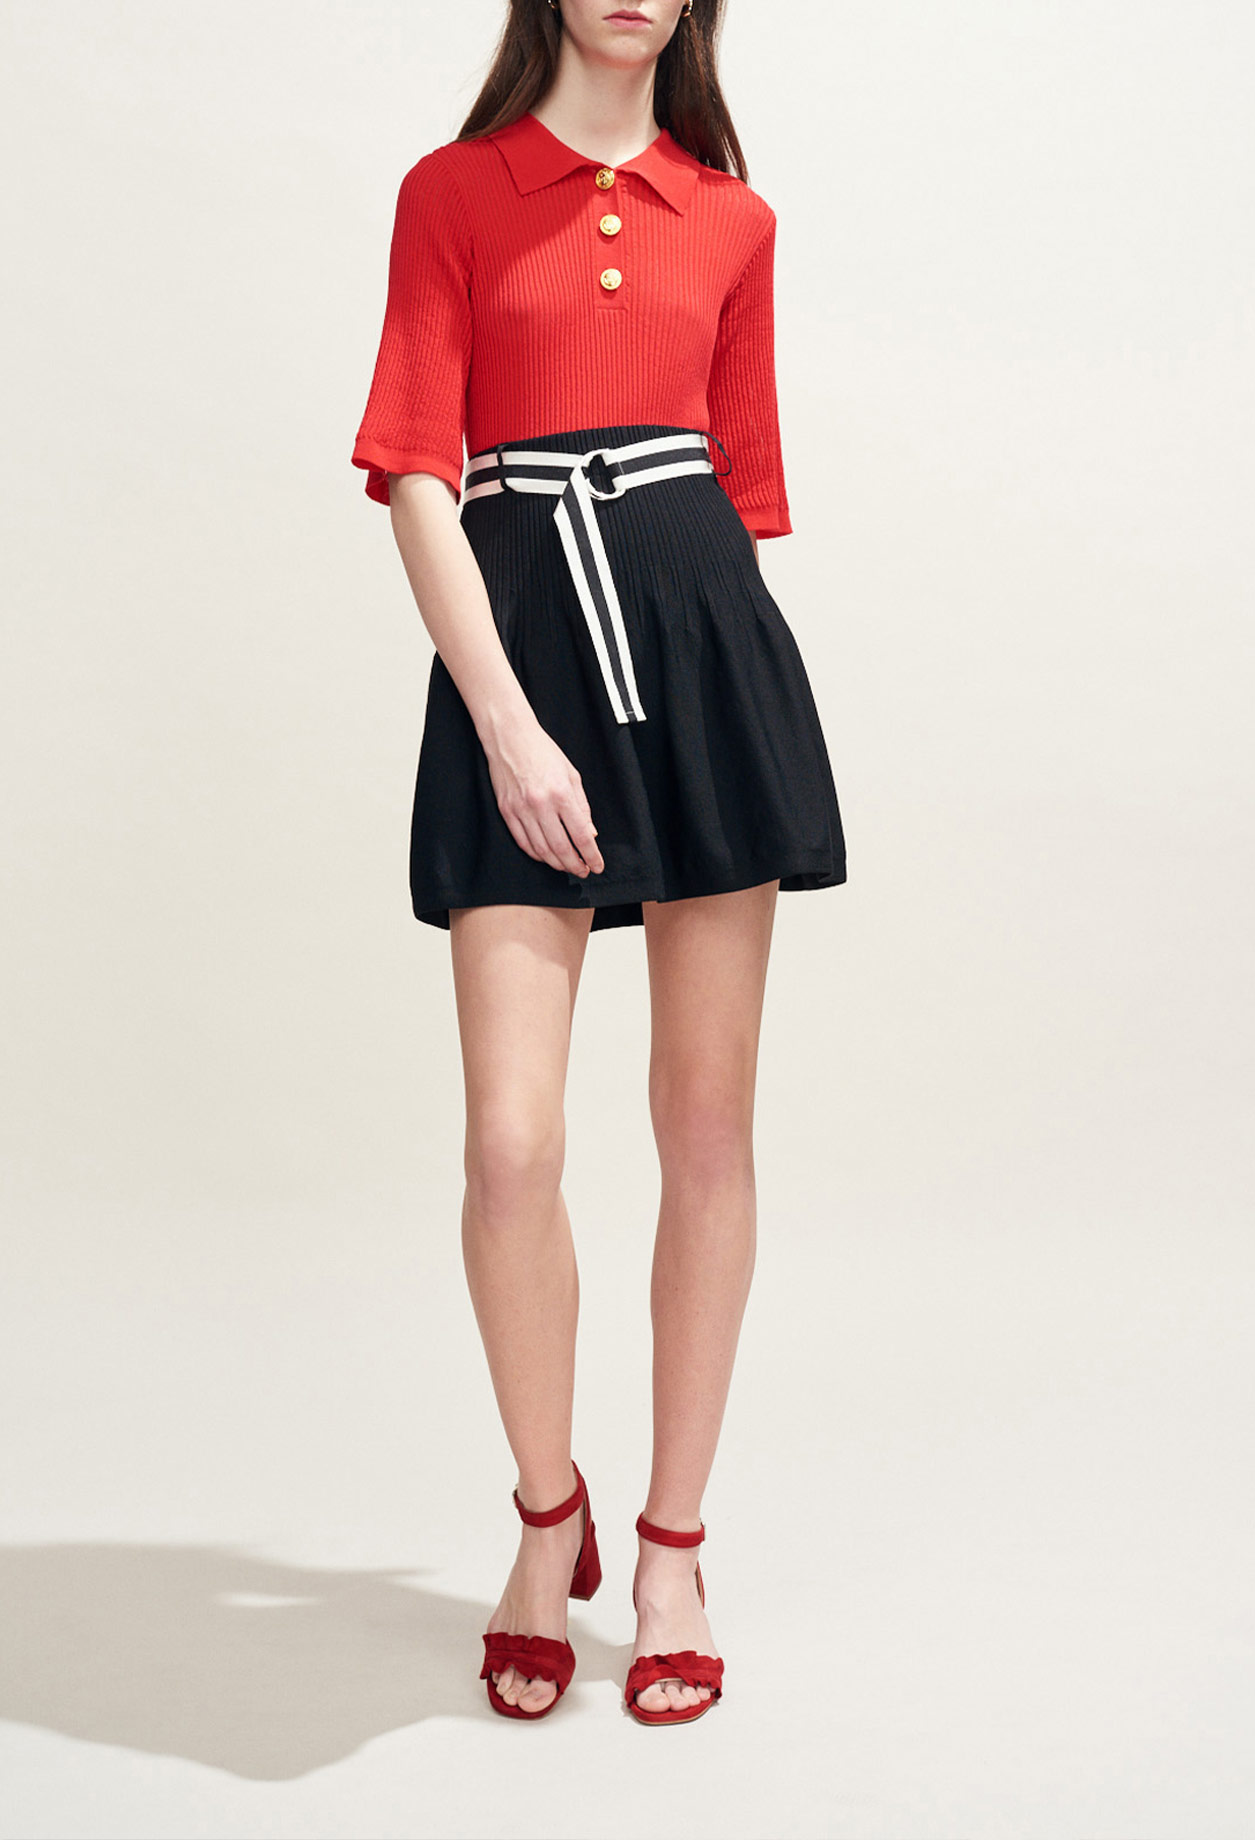 Belted knit skirt